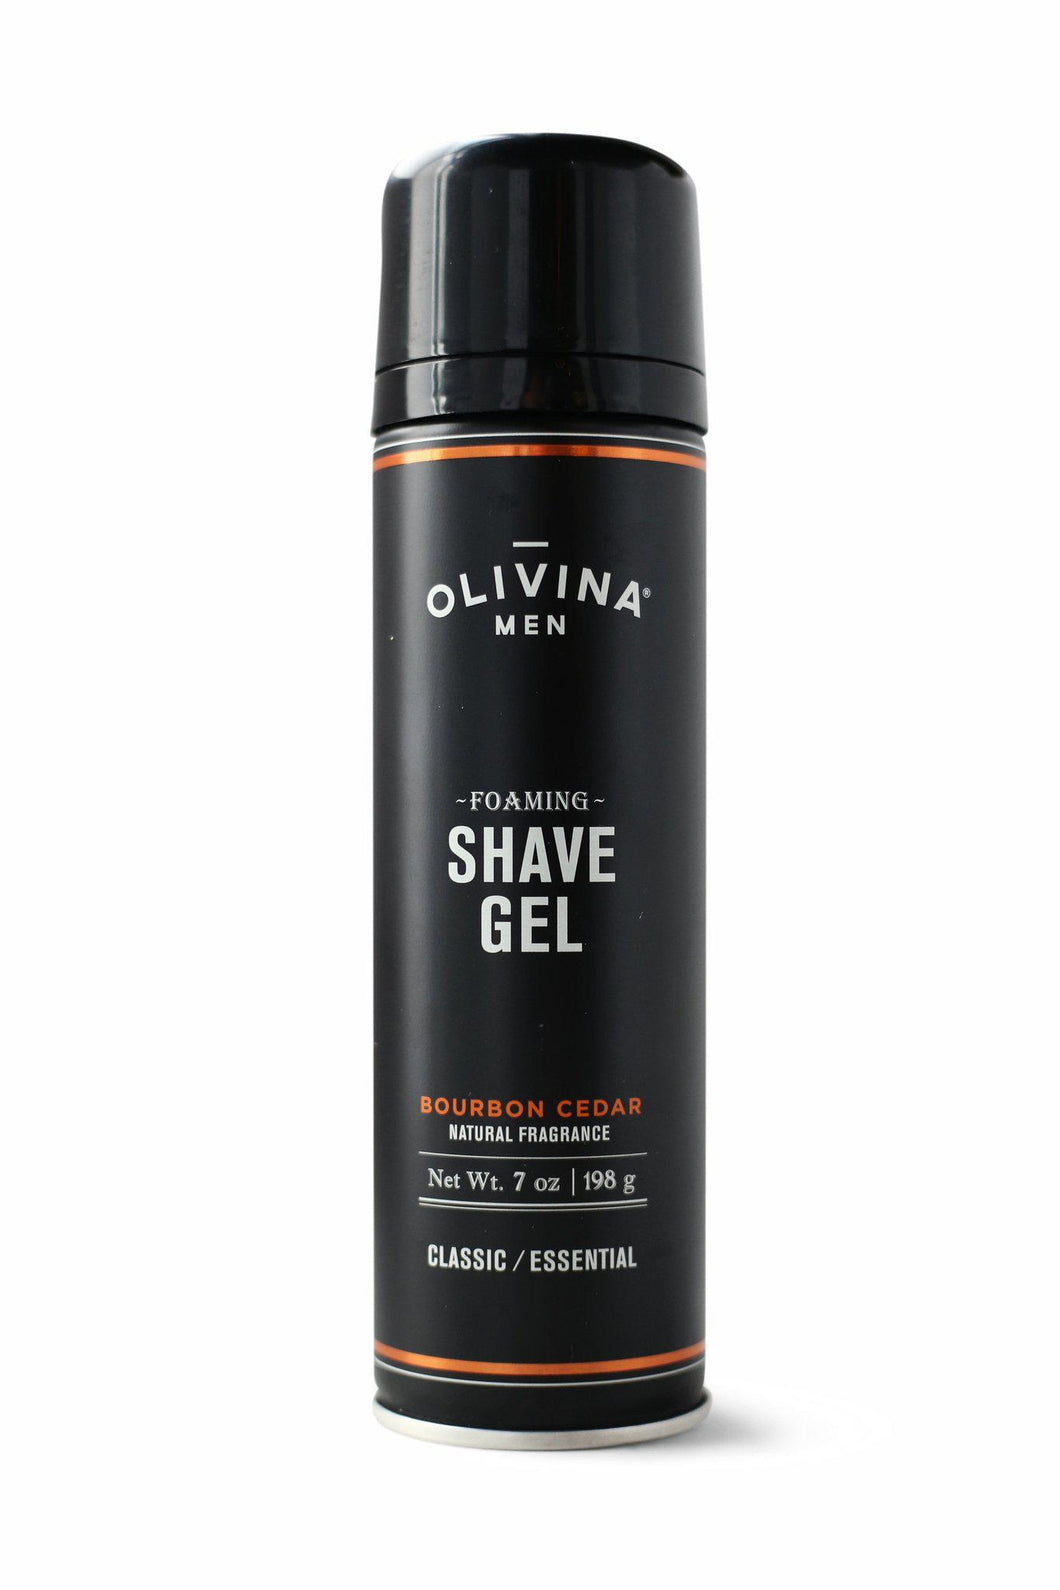 Olivina Foaming Shave Gel 7 oz